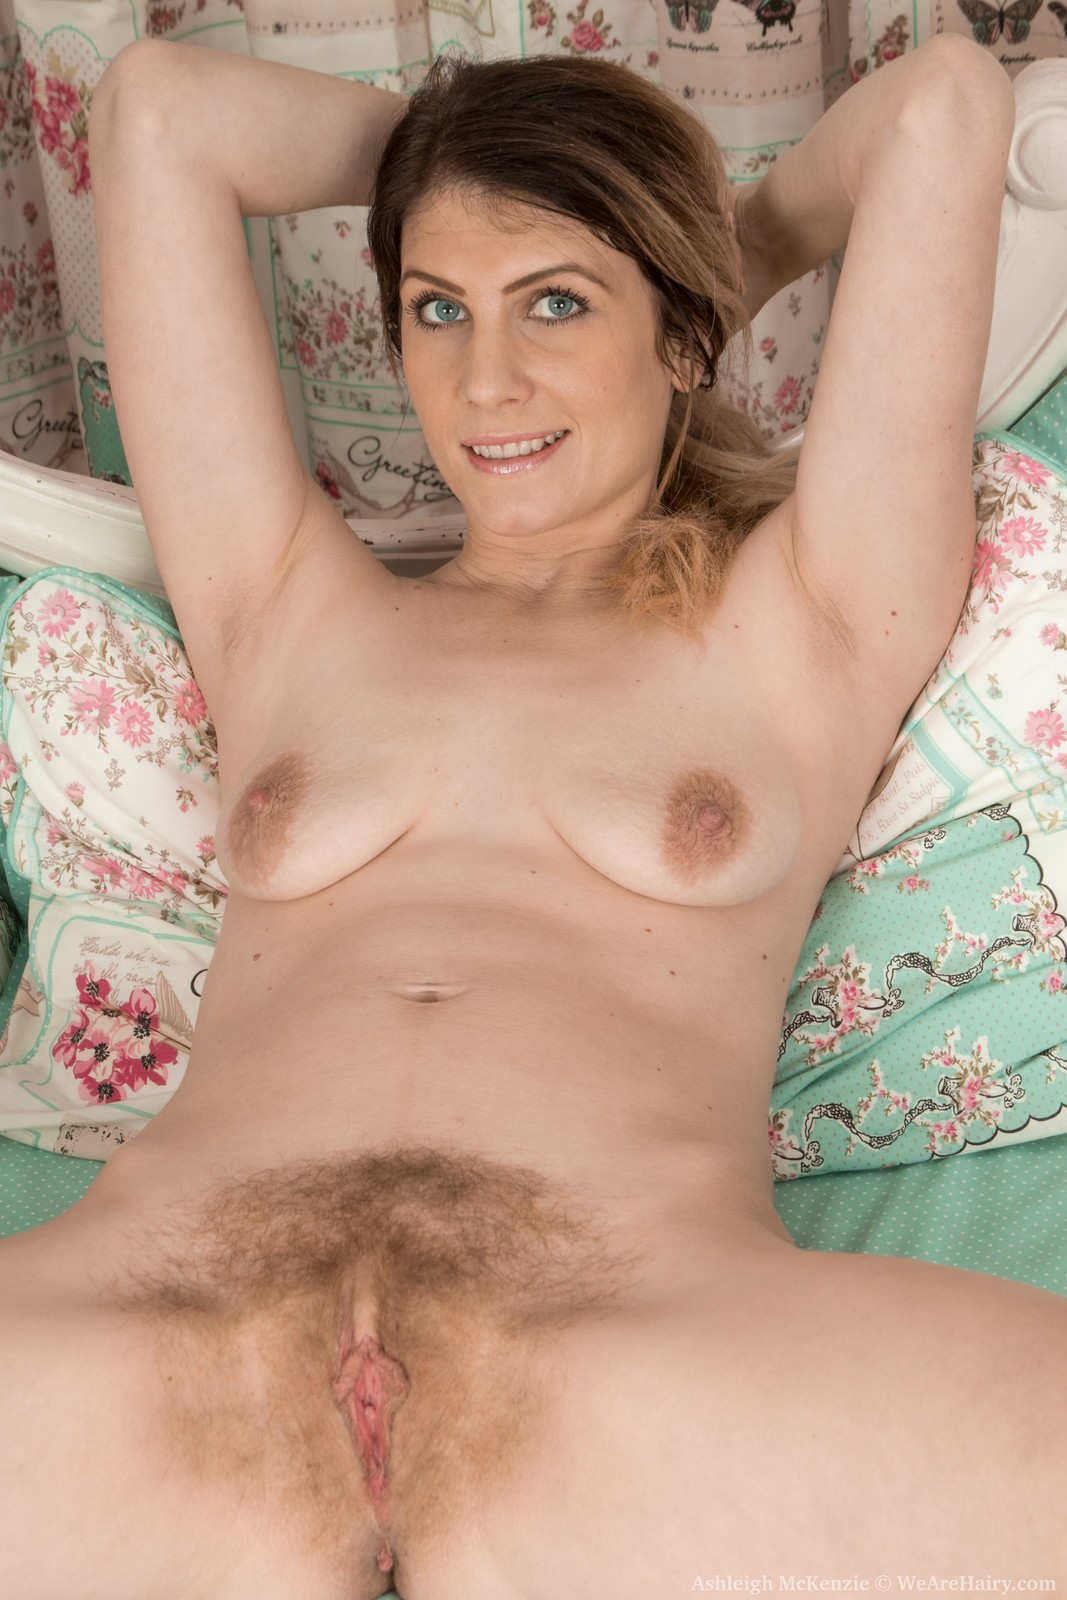 Phrase and amateur milf hairy pussy spread opinion, interesting